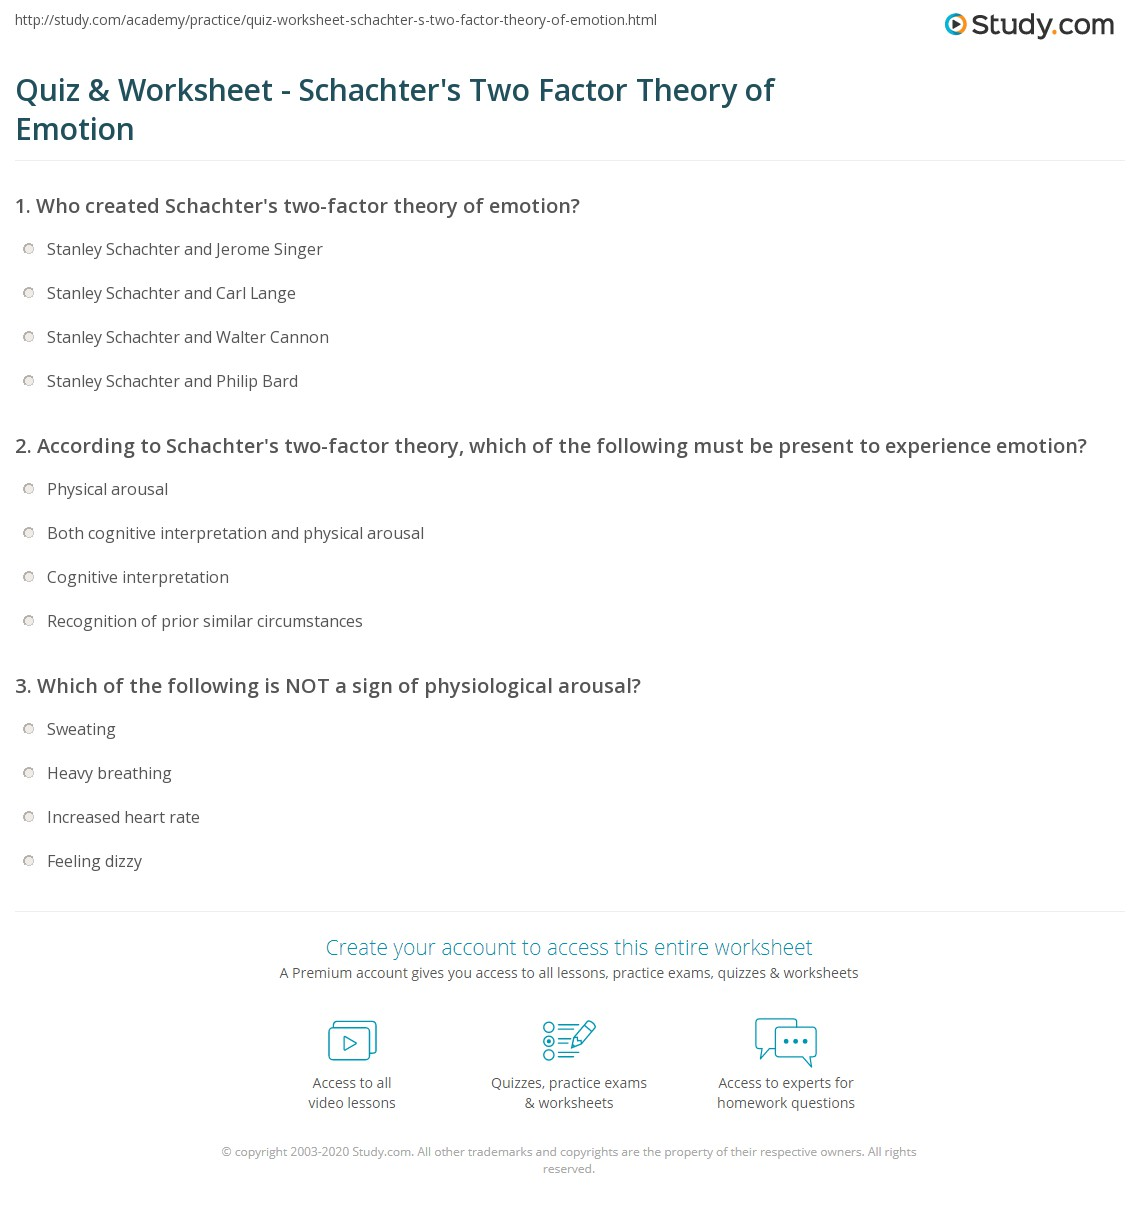 quiz worksheet schachter 39 s two factor theory of emotion. Black Bedroom Furniture Sets. Home Design Ideas